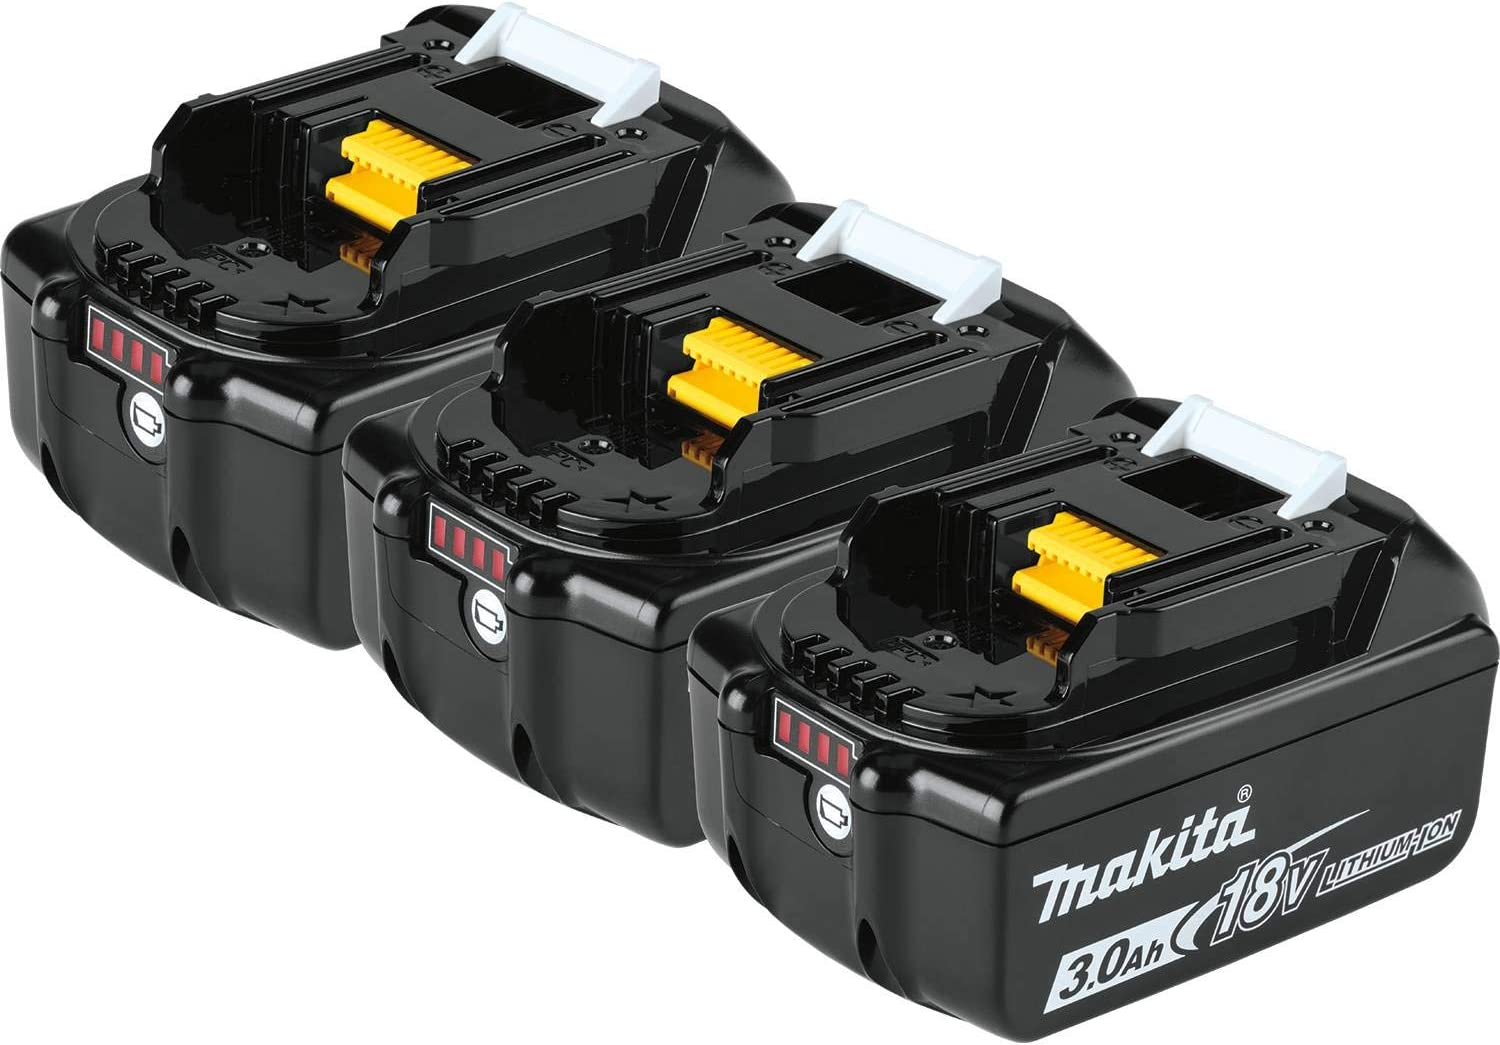 Makita BL1830B-3 18V LXT Lithium-Ion 3.0Ah Battery, 3/pk